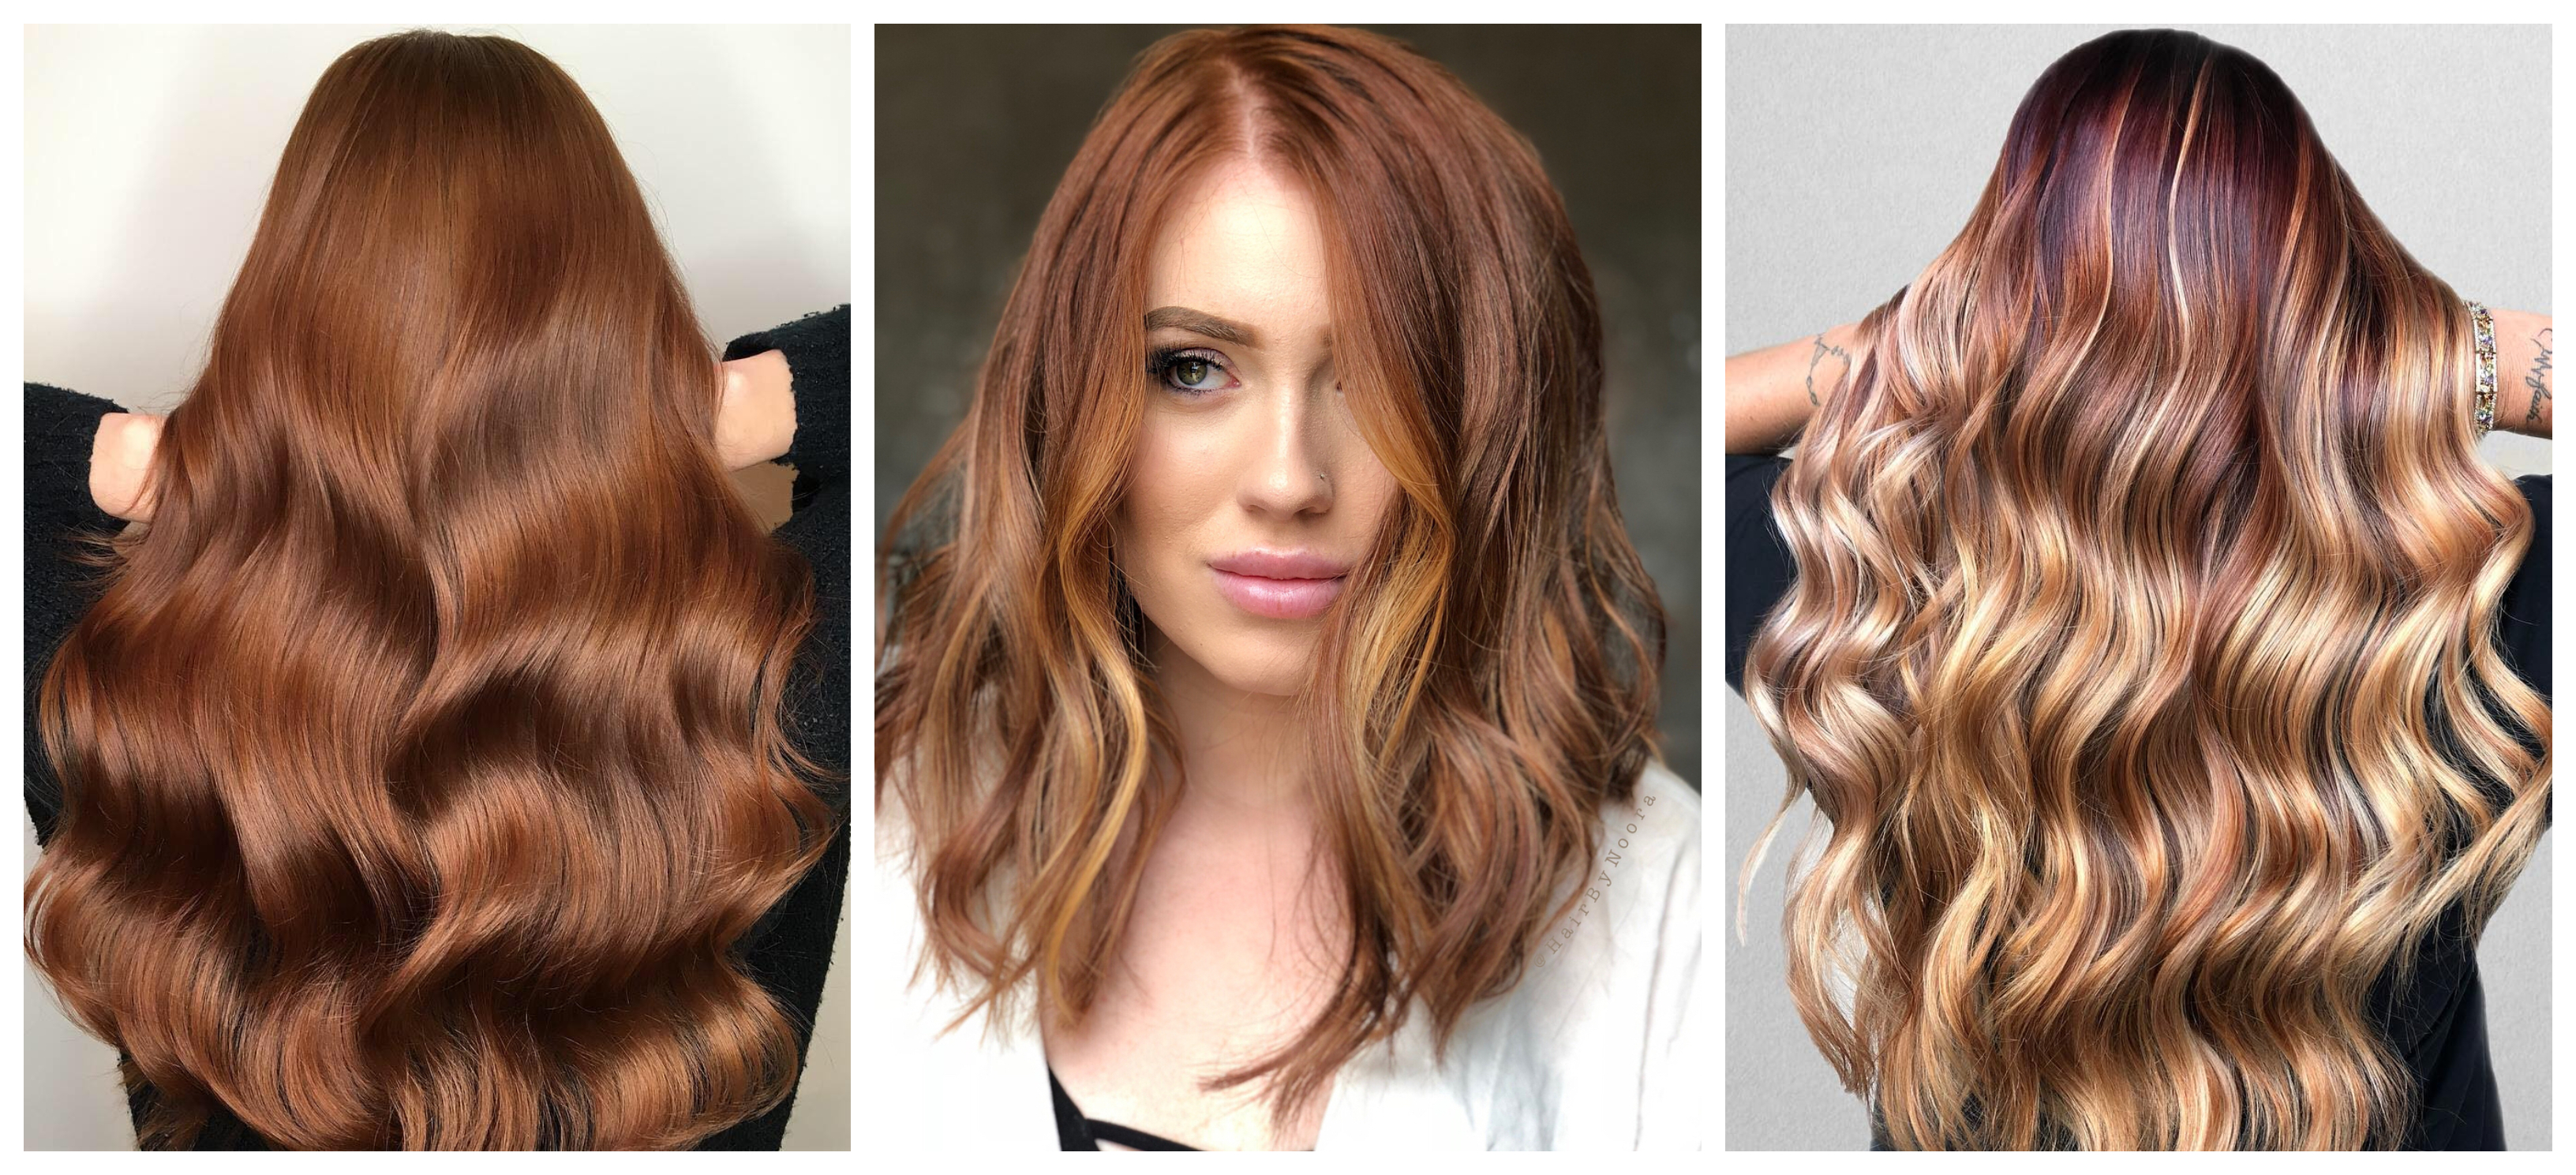 Auburn Hair Color Trend